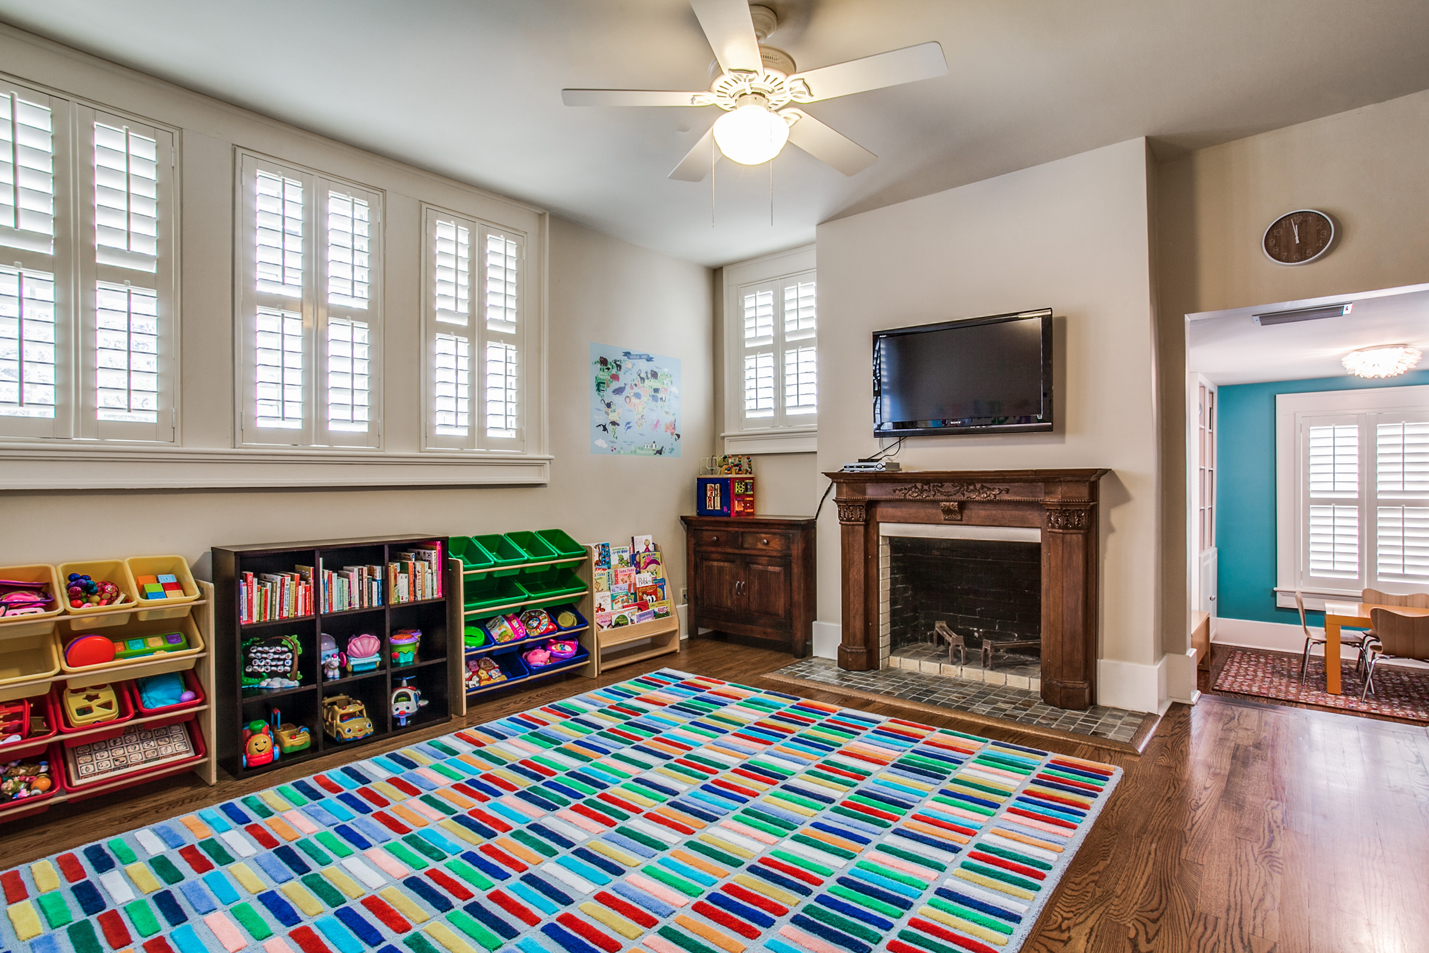 7 Ways to Keep Your House Show-Ready, Even with Kiddos Home for Summer